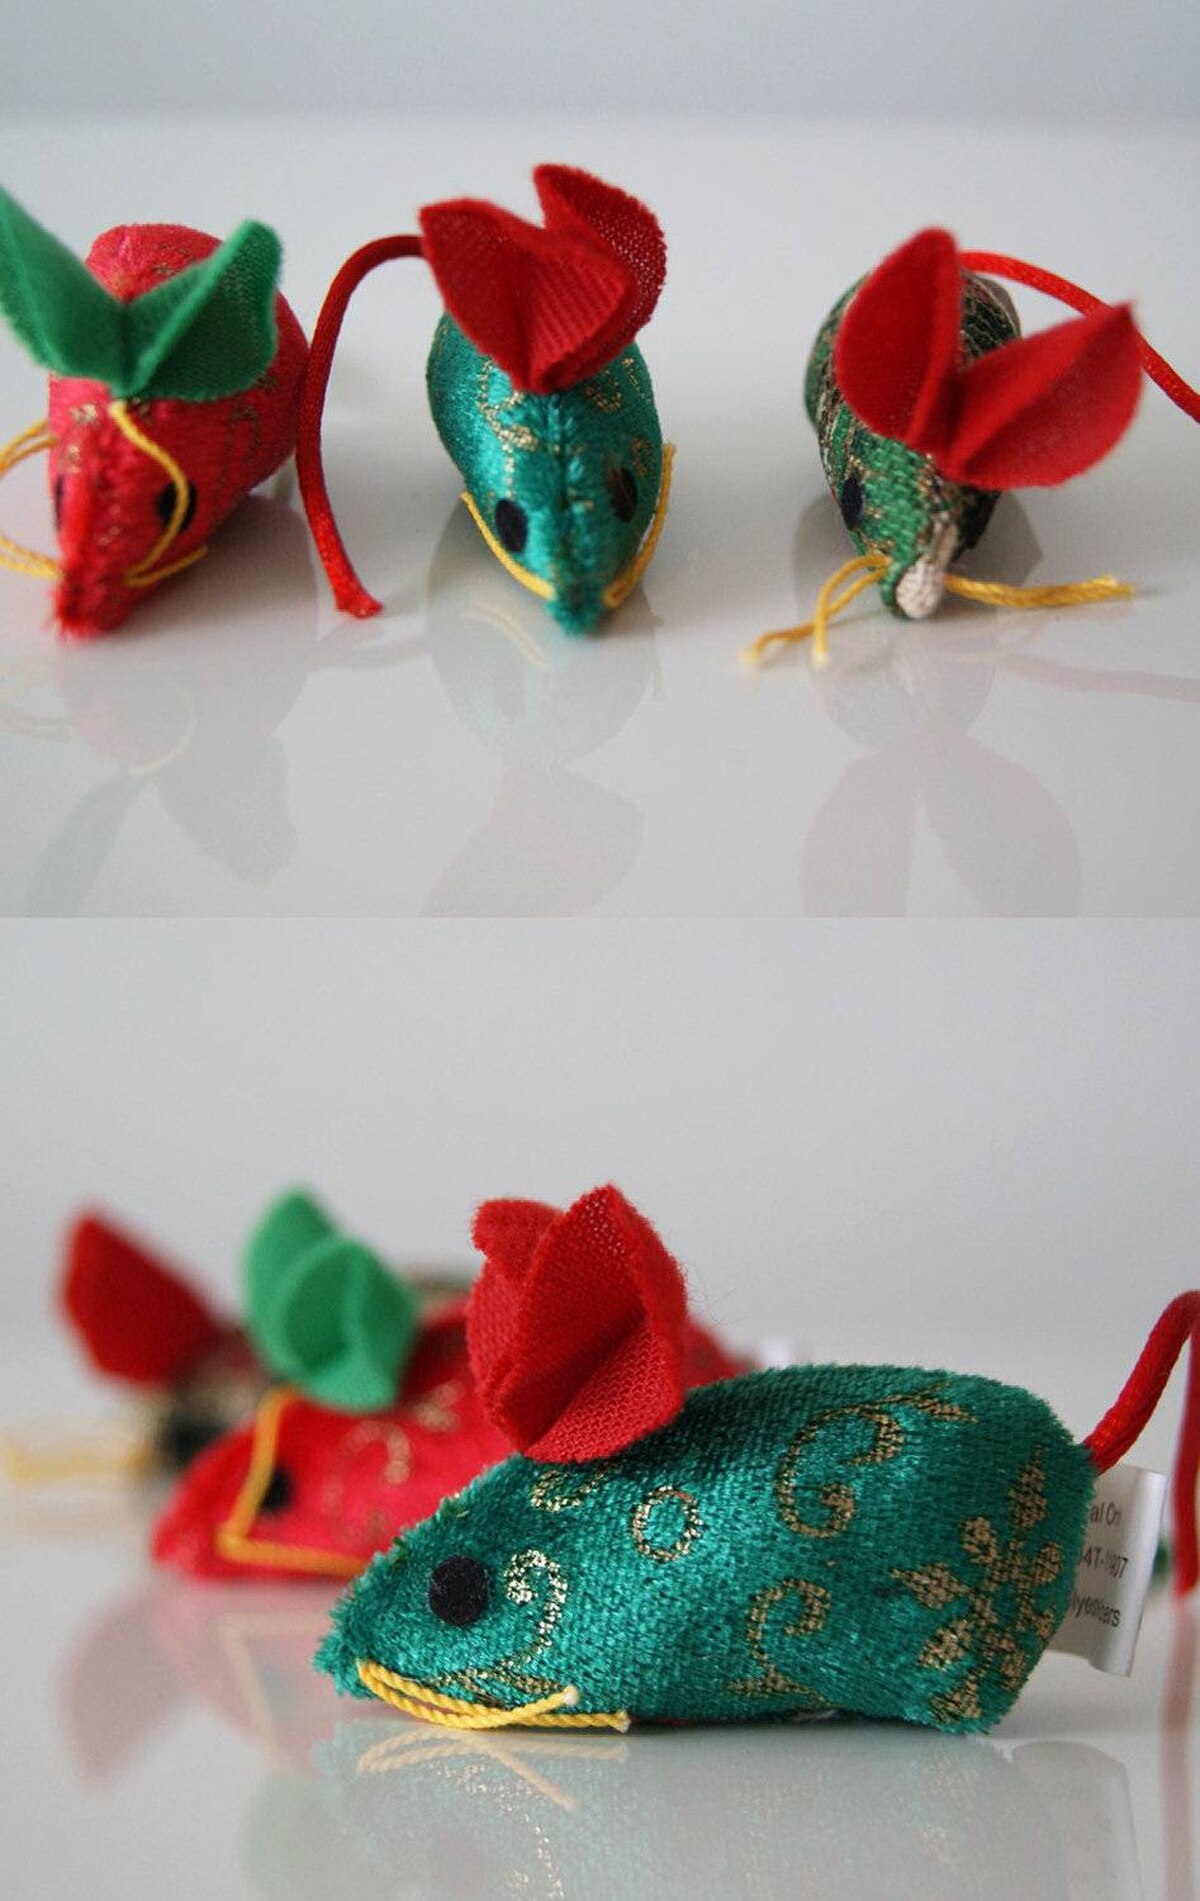 Your cat's toys will be sprawled around the house anyway - so they might as well be festive and cute. These tiny mice will entertain your feline friend with hours of batting, and give your place a nice added sparkle, too. Pet Valu, $3.99.